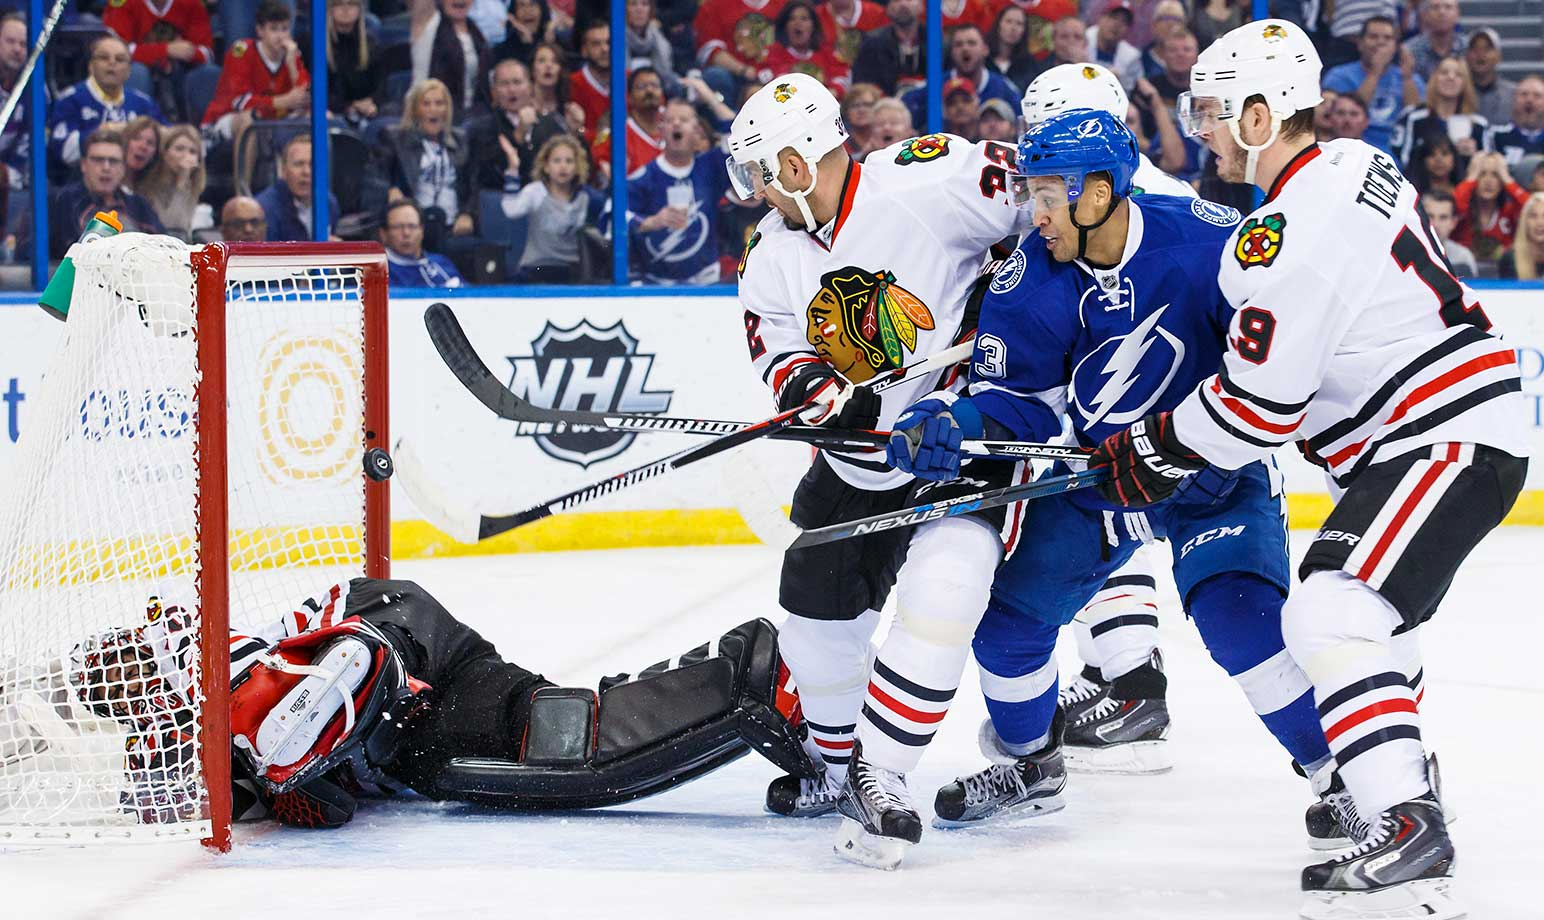 J.T. Brown of the Tampa Bay Lightning shoots the puck while goalie Corey Crawford of the Chicago Blackhawks makes a save and Michal Rozsival (32) and Jonathan Toews (19) look for a rebound at the Amalie Arena in Tampa.